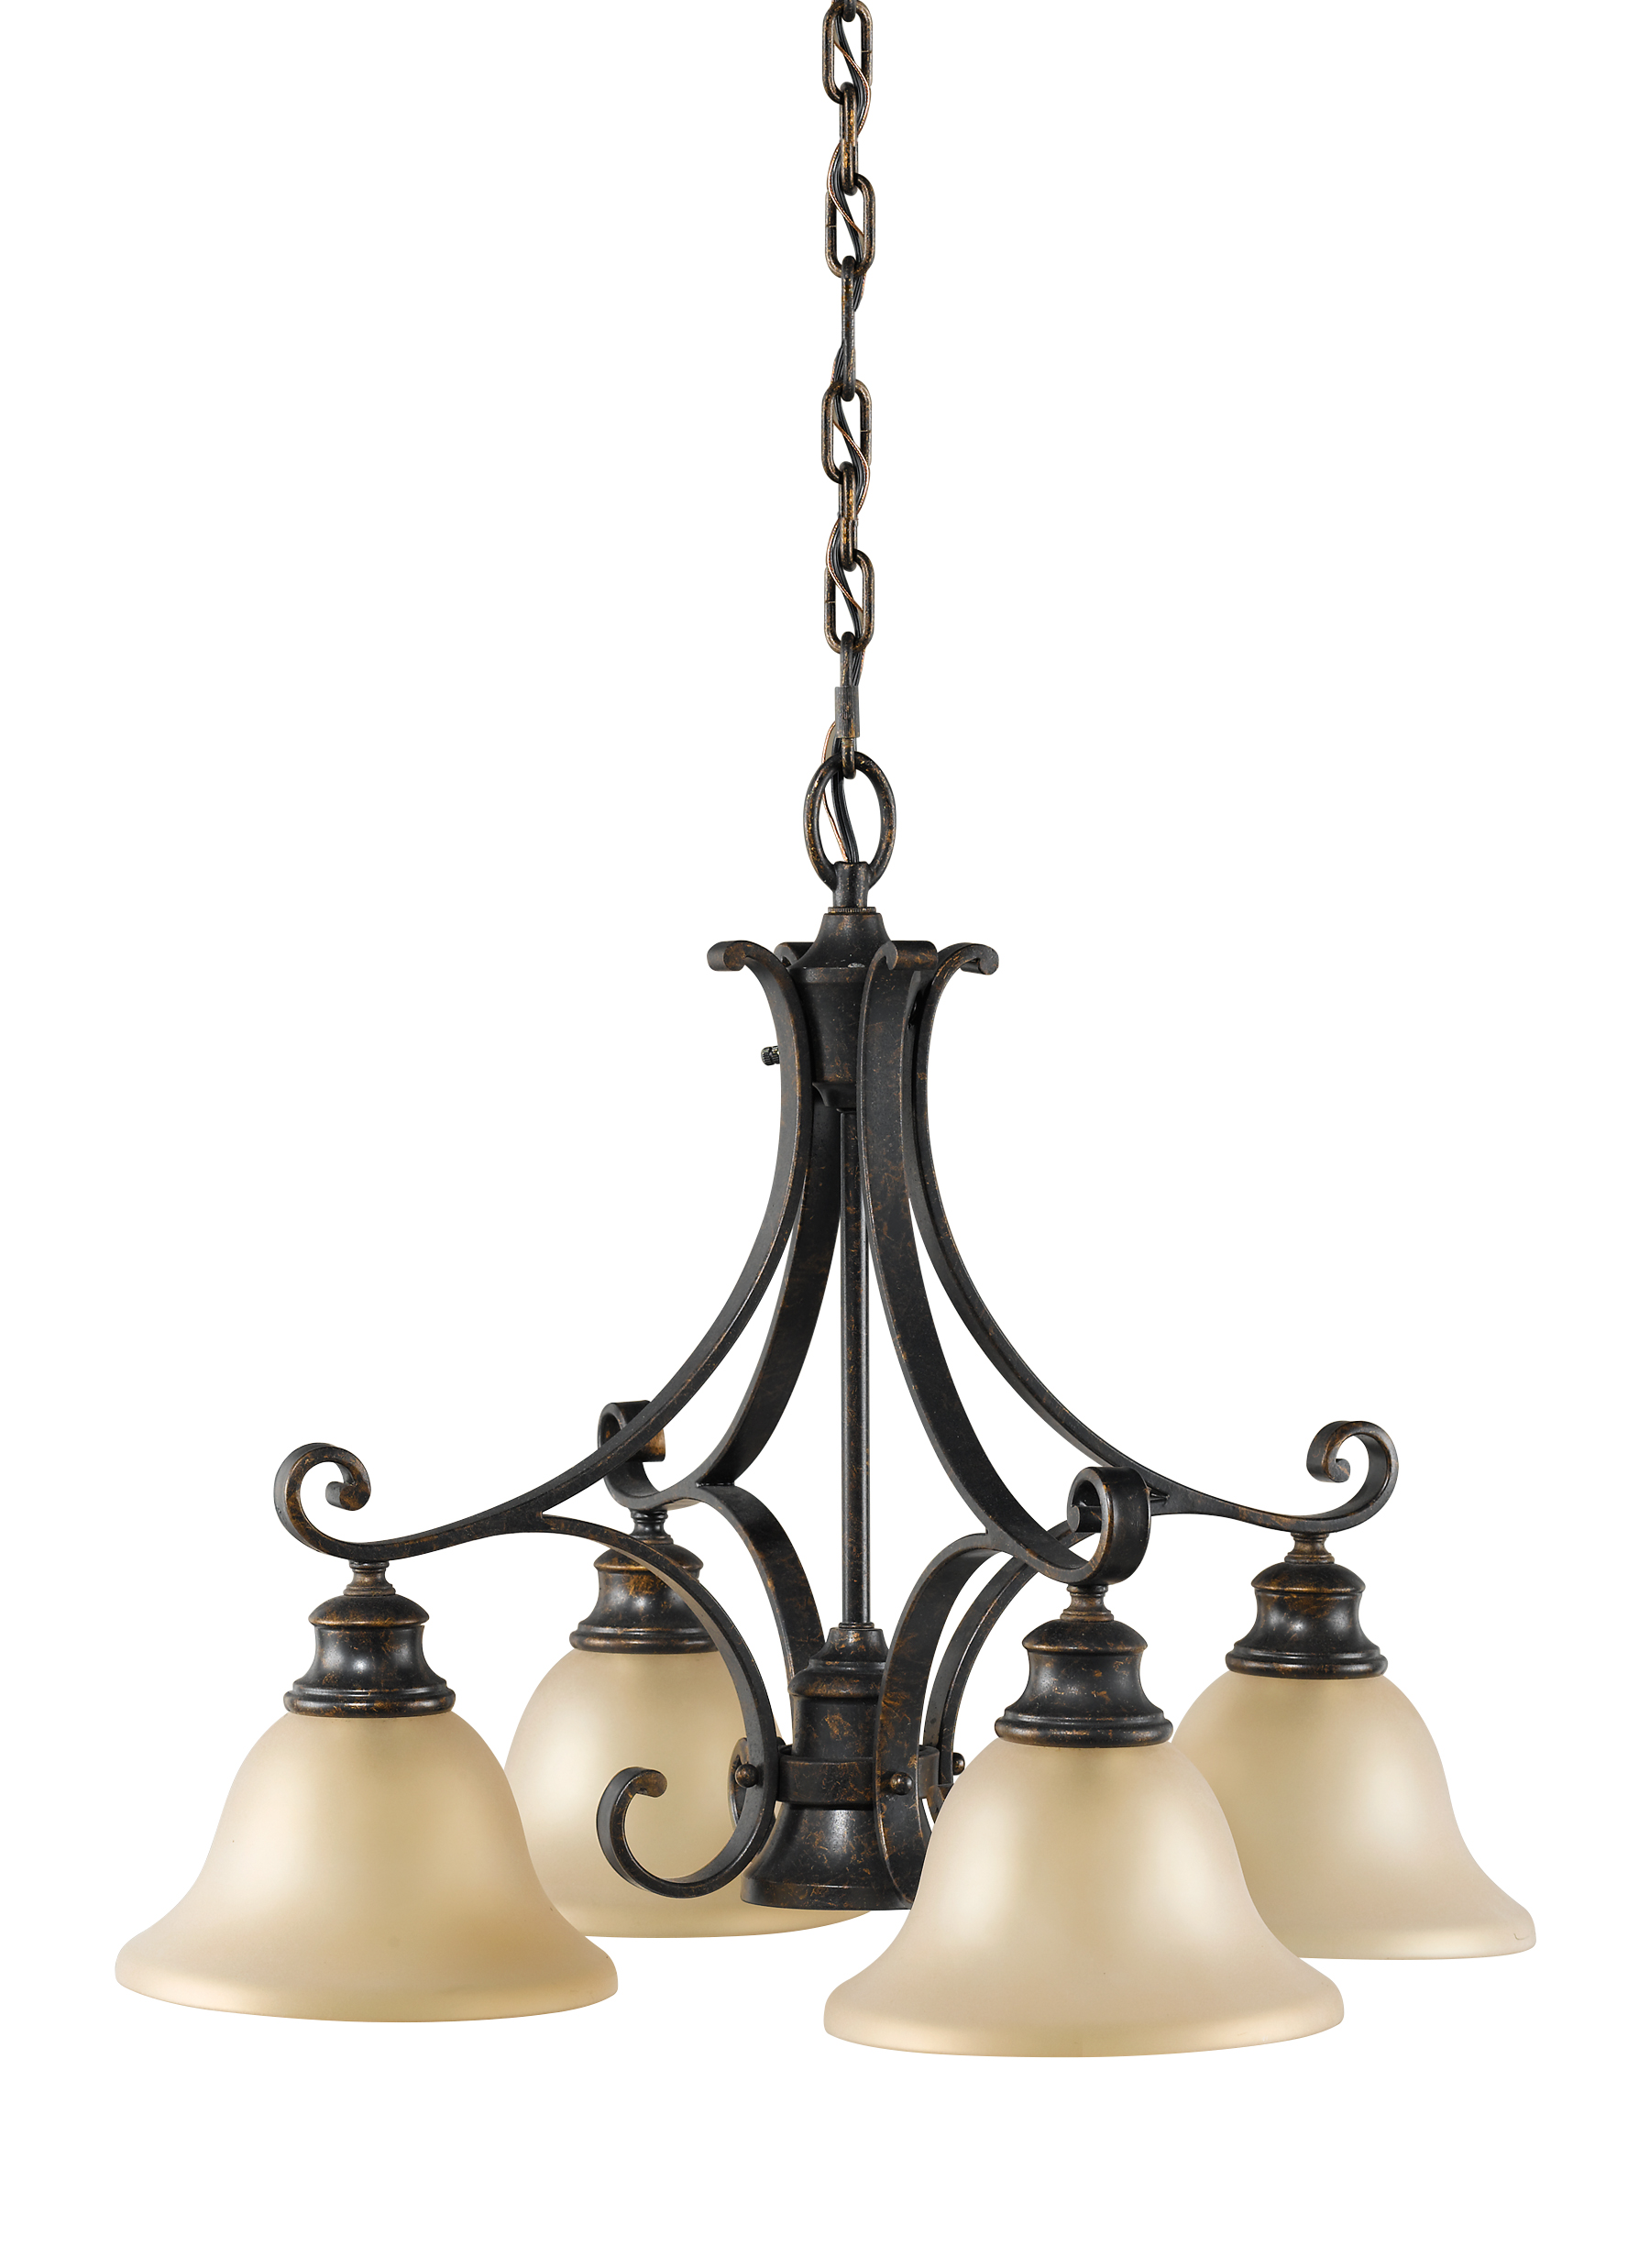 F218641LBR5 Light Kitchen ChandelierLiberty Bronze